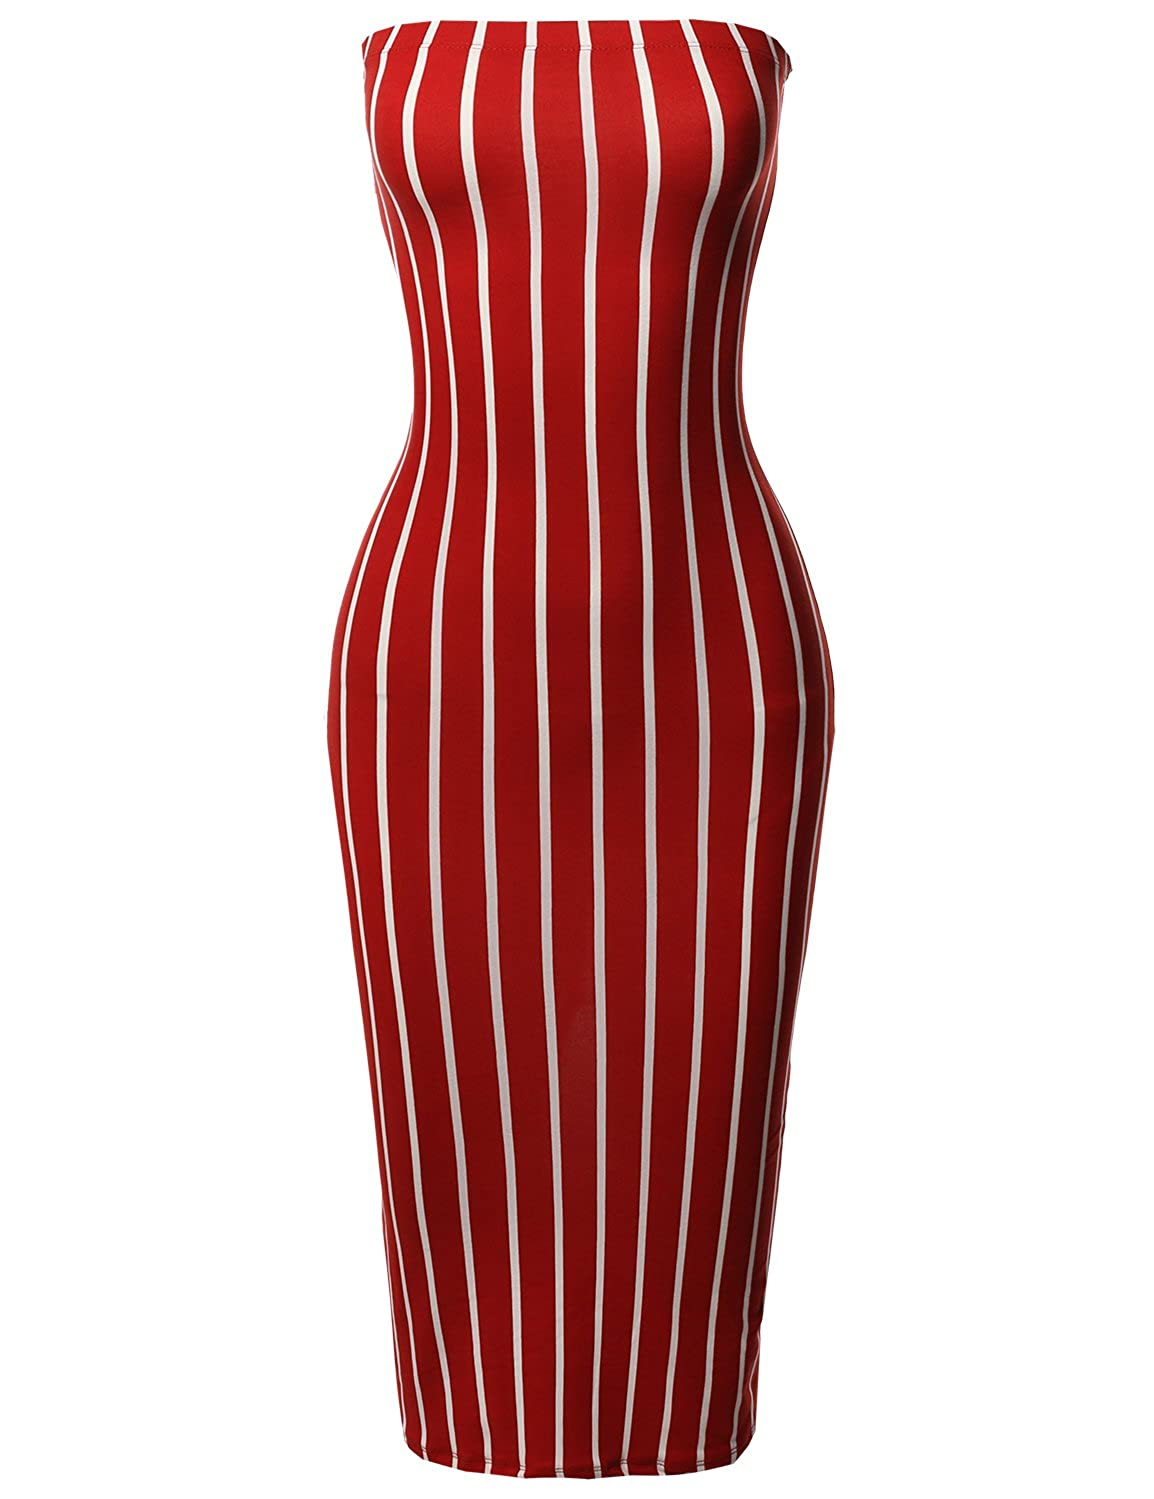 d13b1df6c36 Tight fit   Strapless   Elastic tube top   Pinstripe pattern print   Midi  length dress. HAND WASH COLD. DO NOT BLEACH. TUMBLE DRY. IRON LOW.